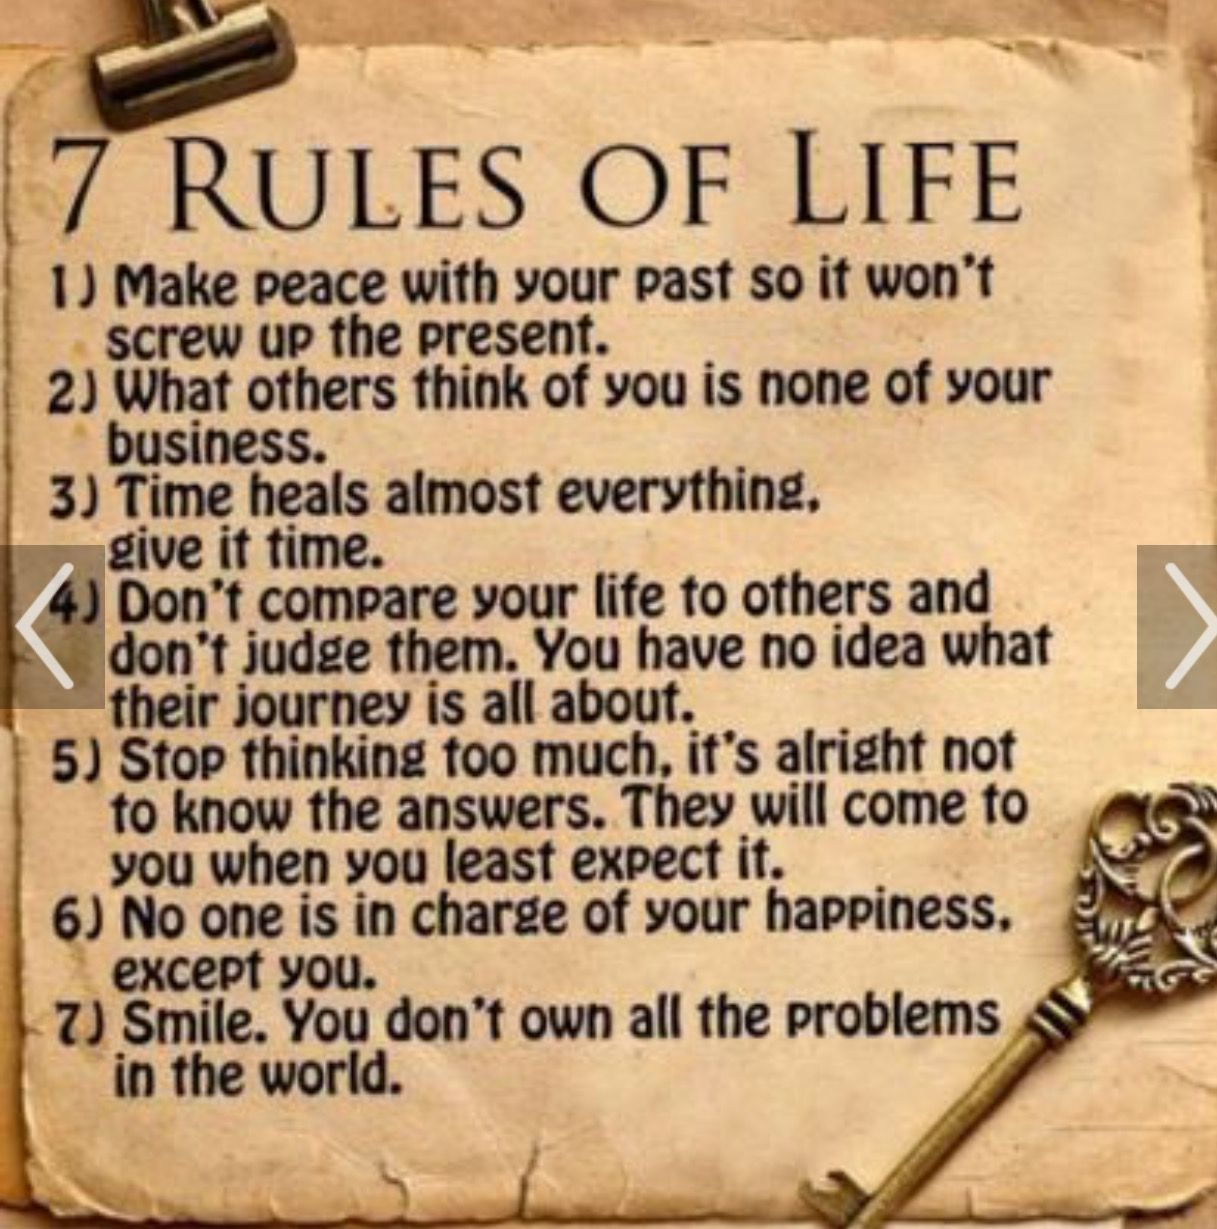 7 Rules Of Life Quote Pinyolanda  Granddaughter 7Th Gen Of Jose Antonio Navarro